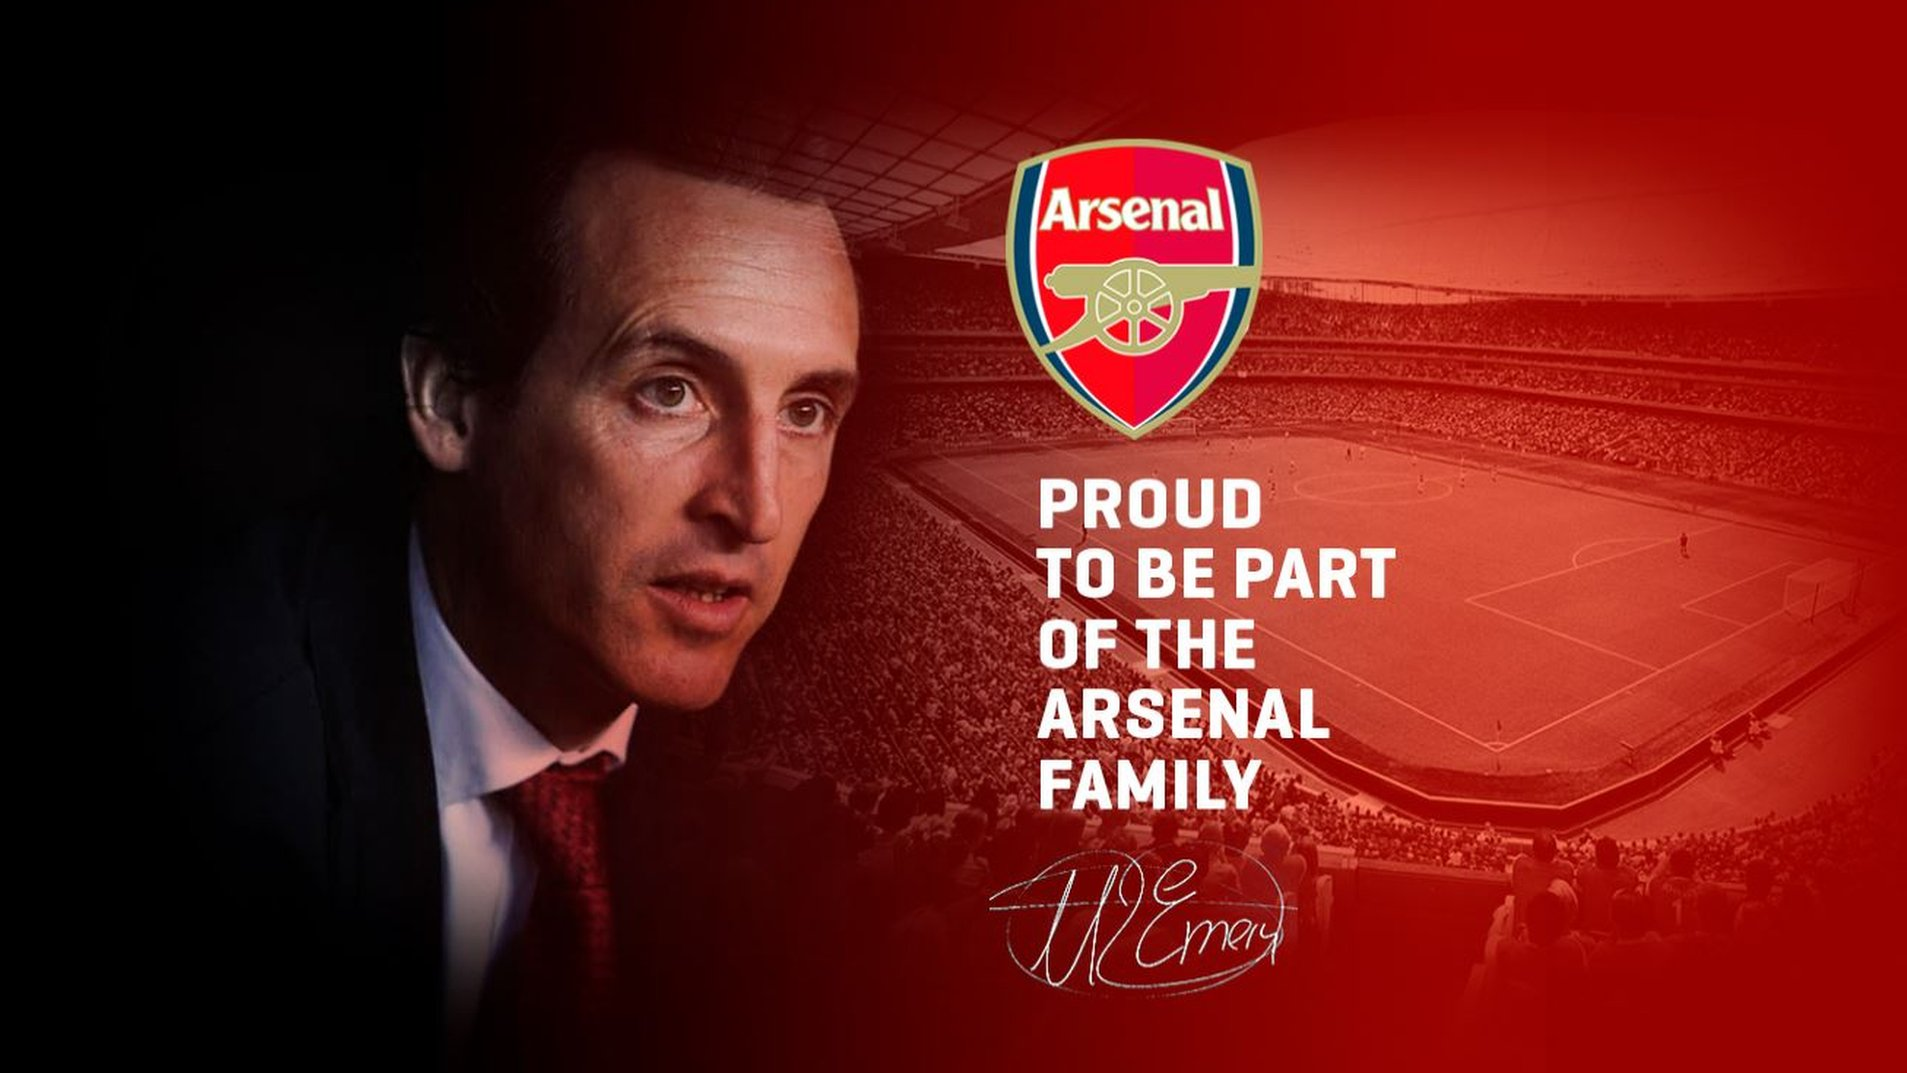 'Proud to be part of the Arsenal family' - official Emery website carries Gunners message